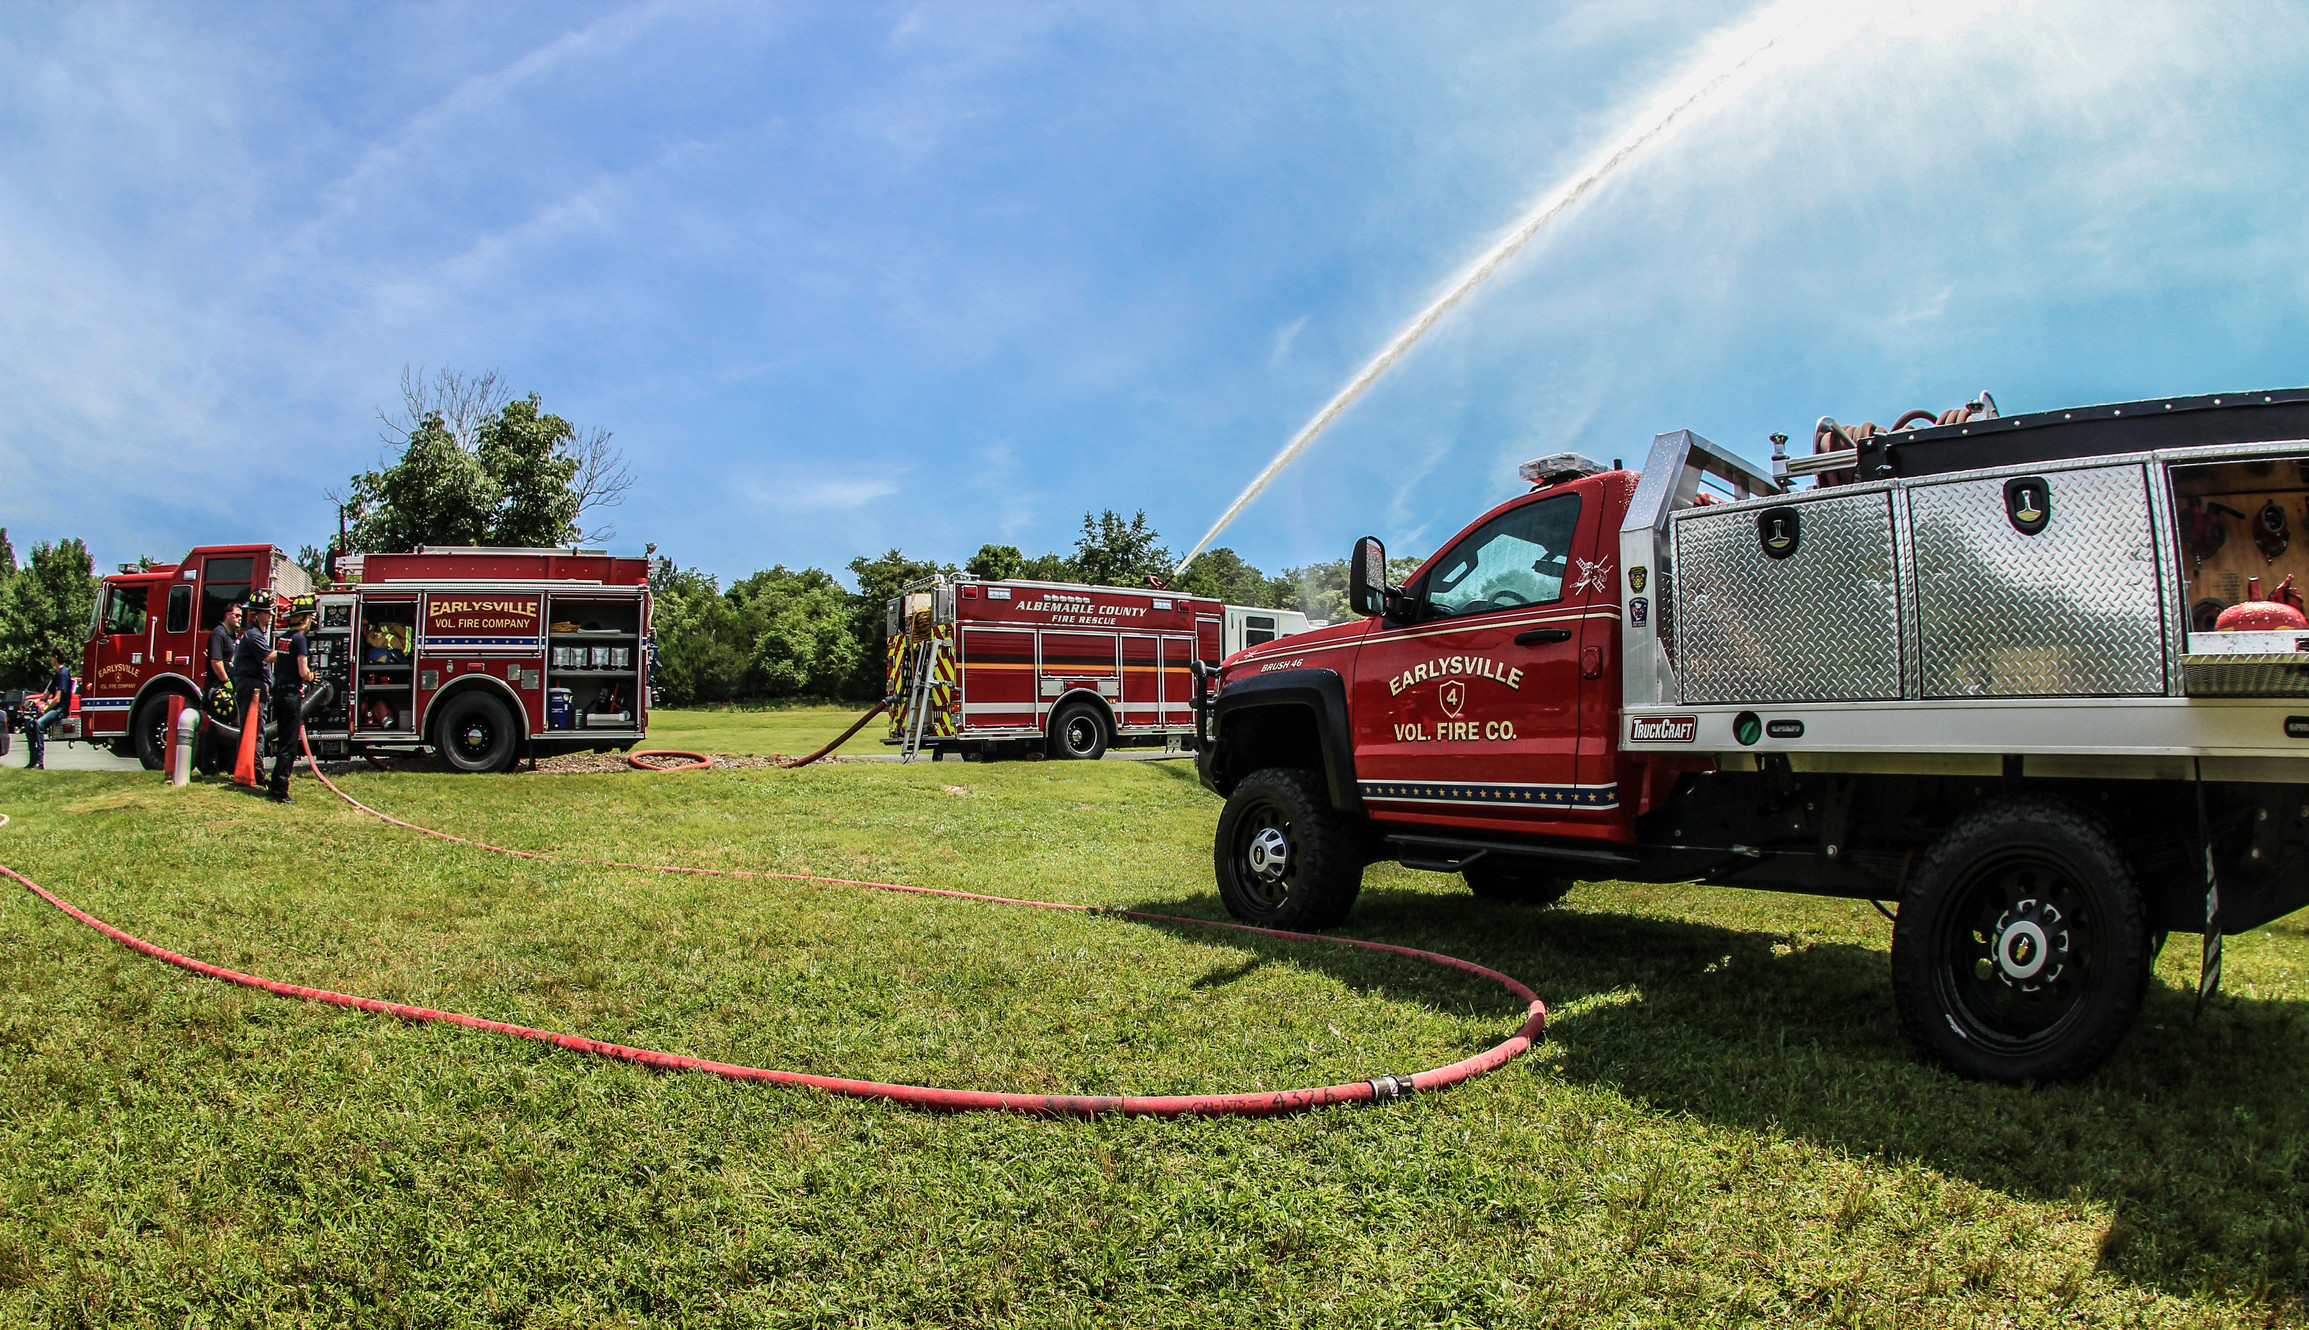 NEWS & EVENTS | Earlysville Fire Company located in